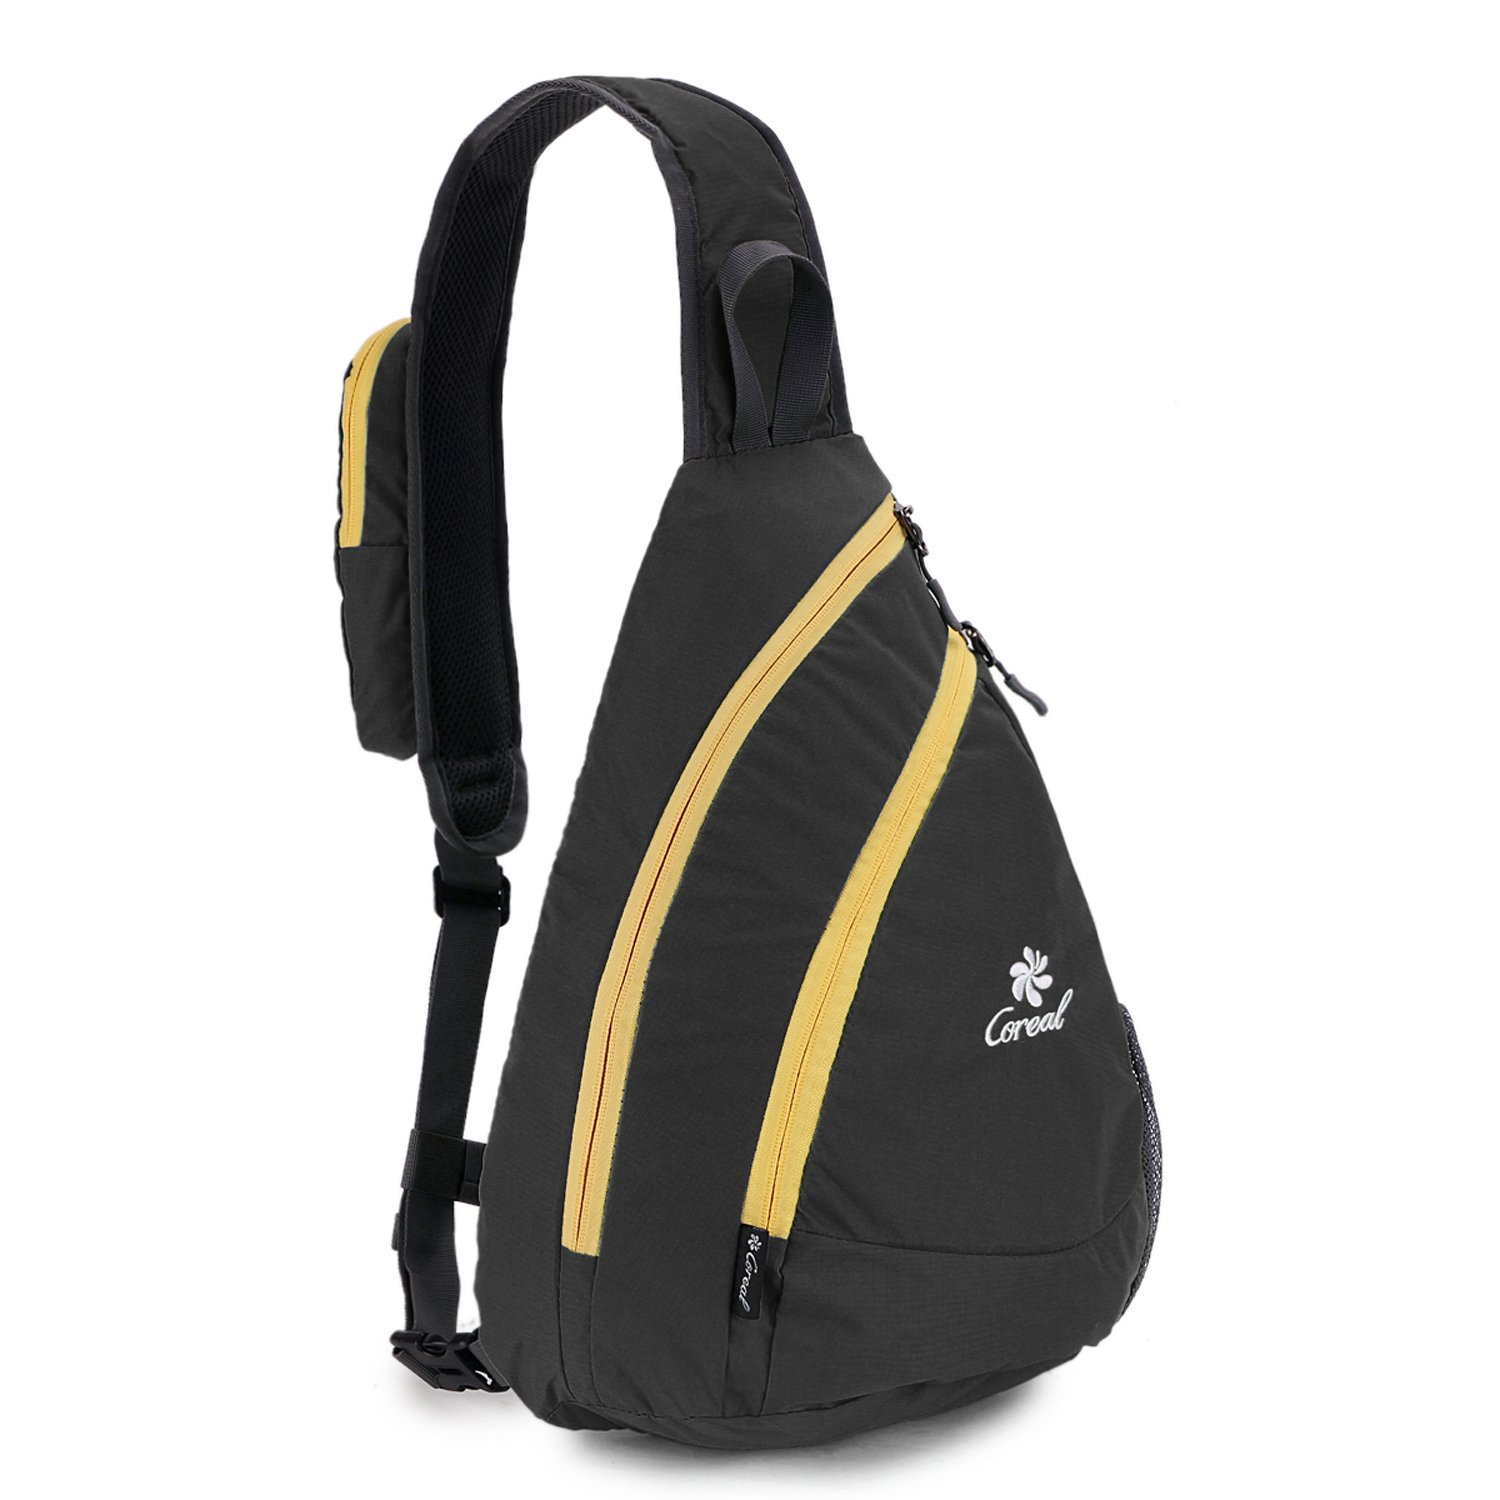 durable service Coreal Sling Bags Crossbody One Shoulder Backpack Men Women bc75f8cffb